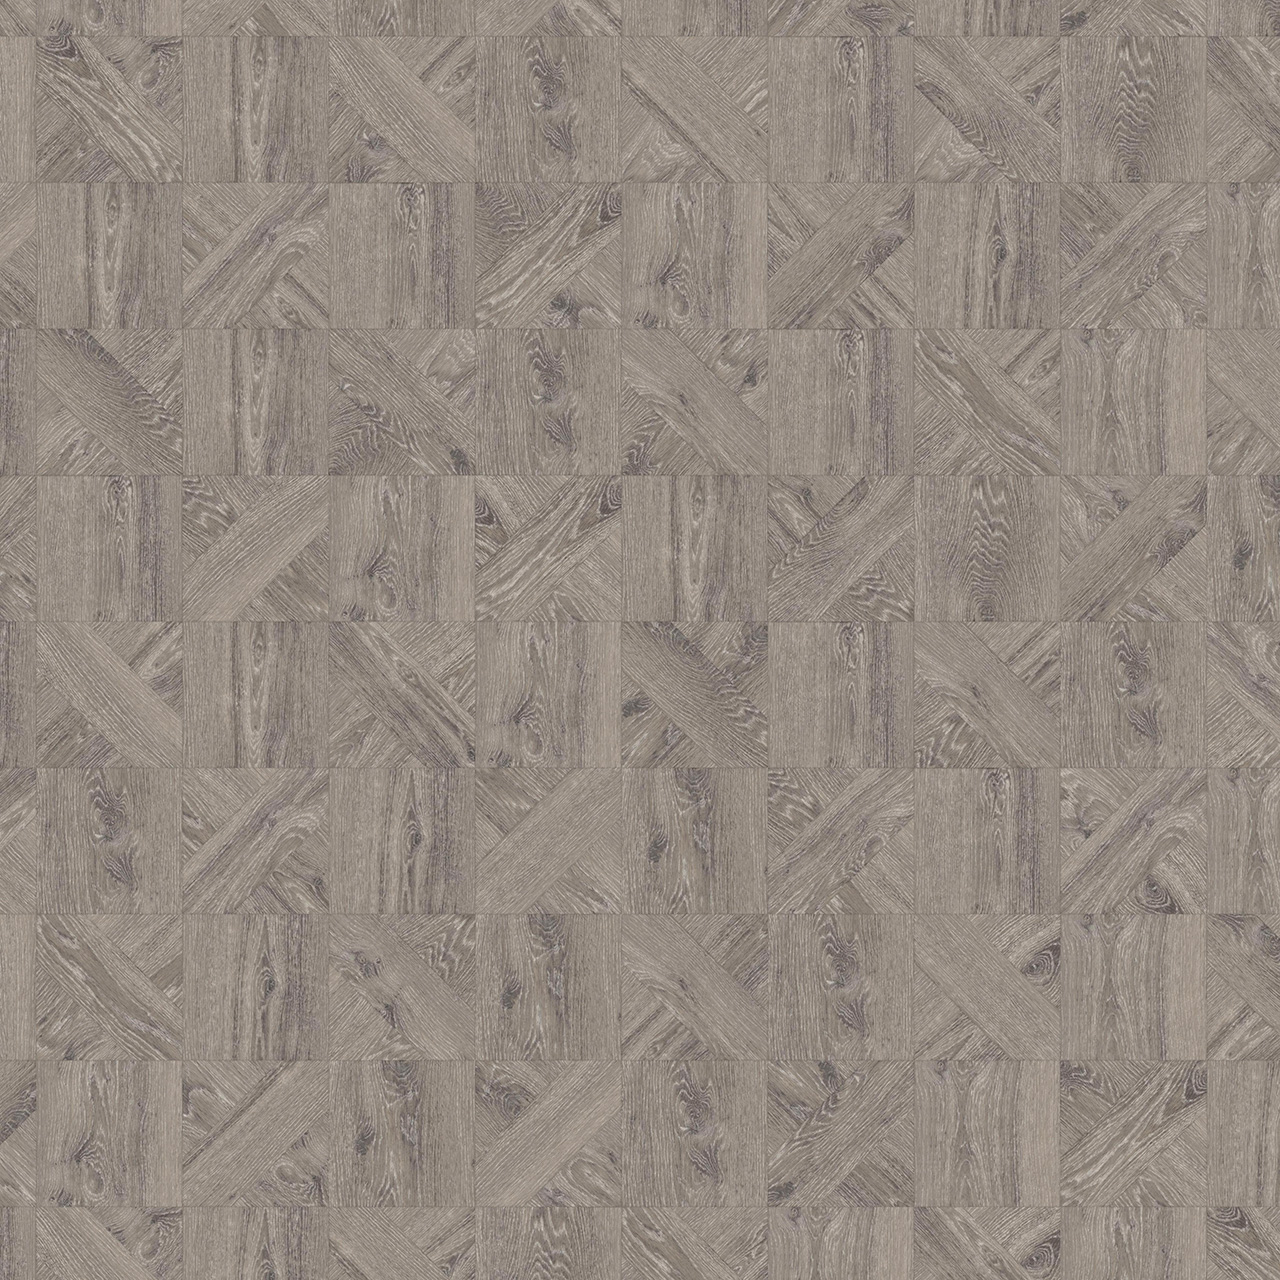 Amtico International: Cloister - DC123